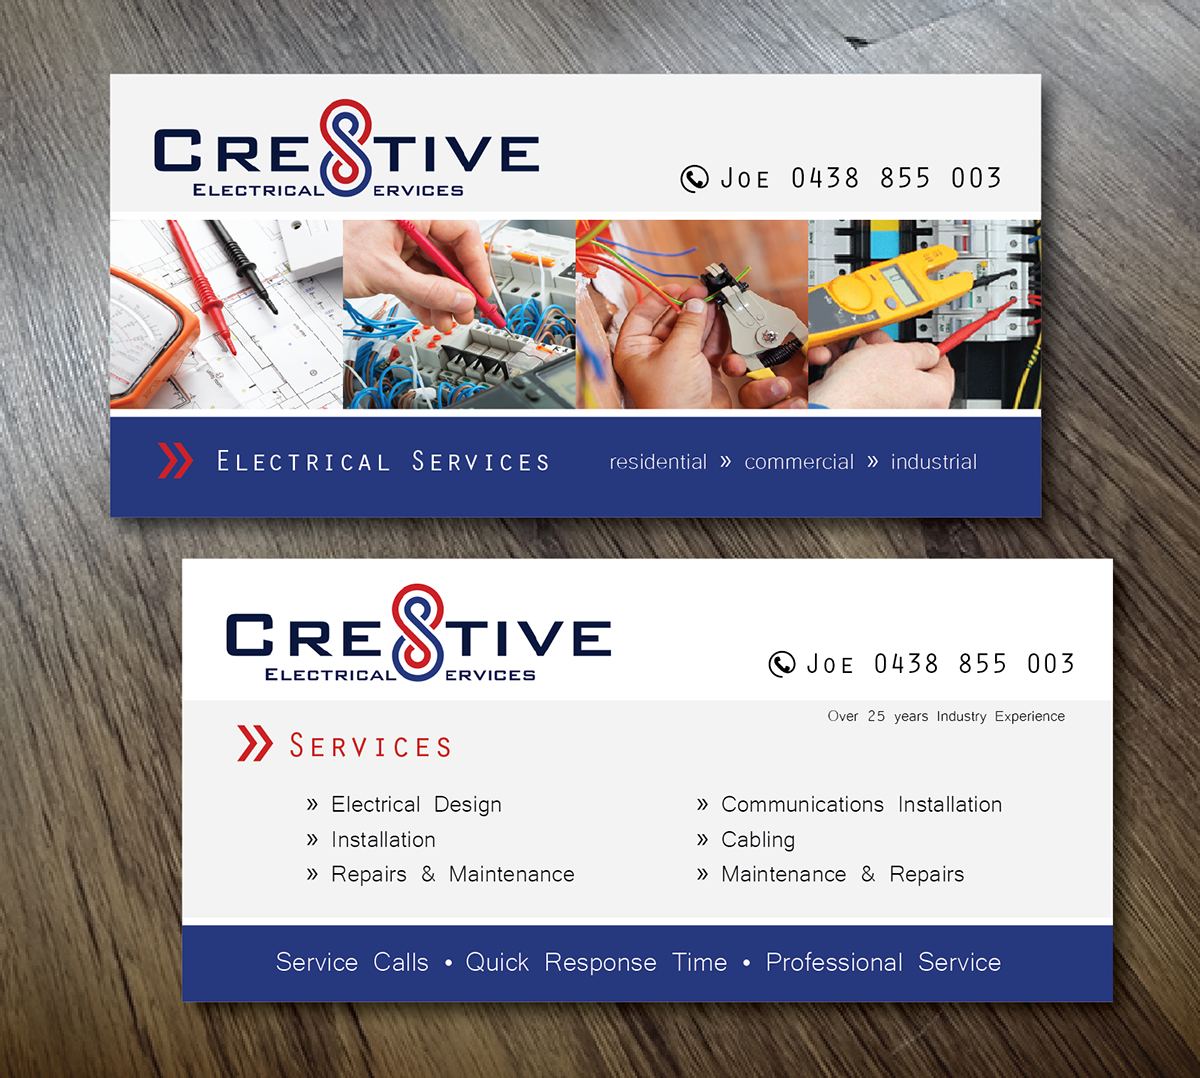 Flyer Design By Alex989 For Cre8tive Electrical Services Needs A